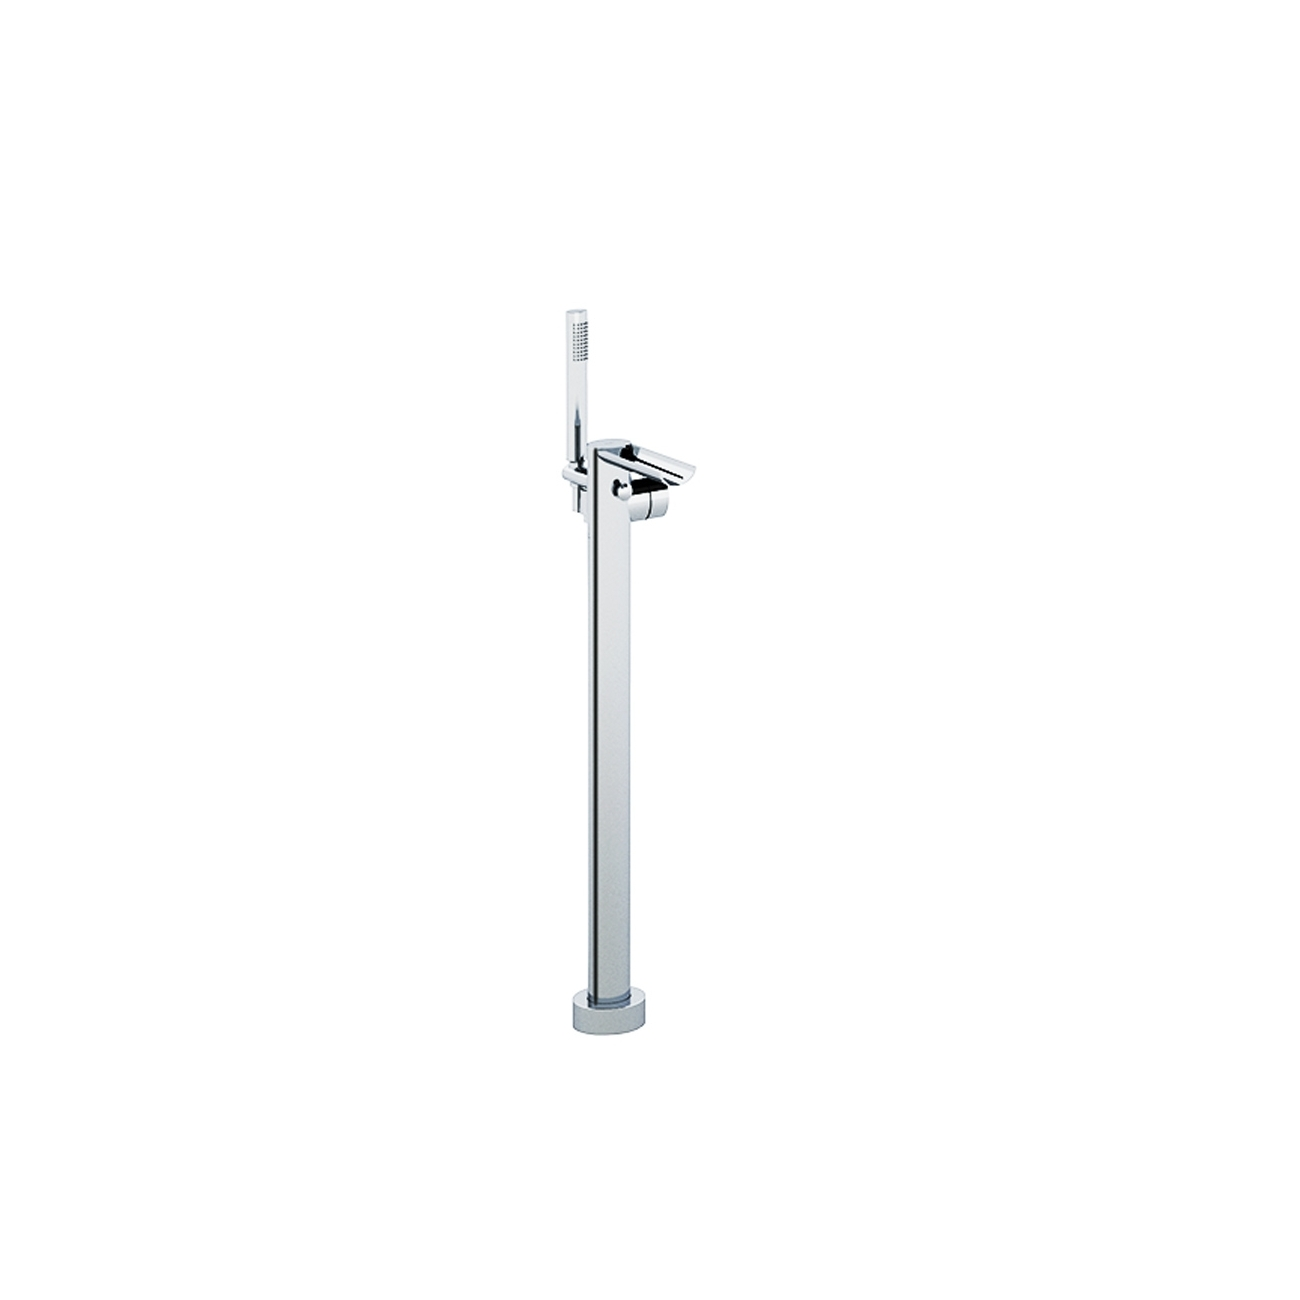 BELLOSTA FUNTANIN FLOOR SPOUT FOR BATH